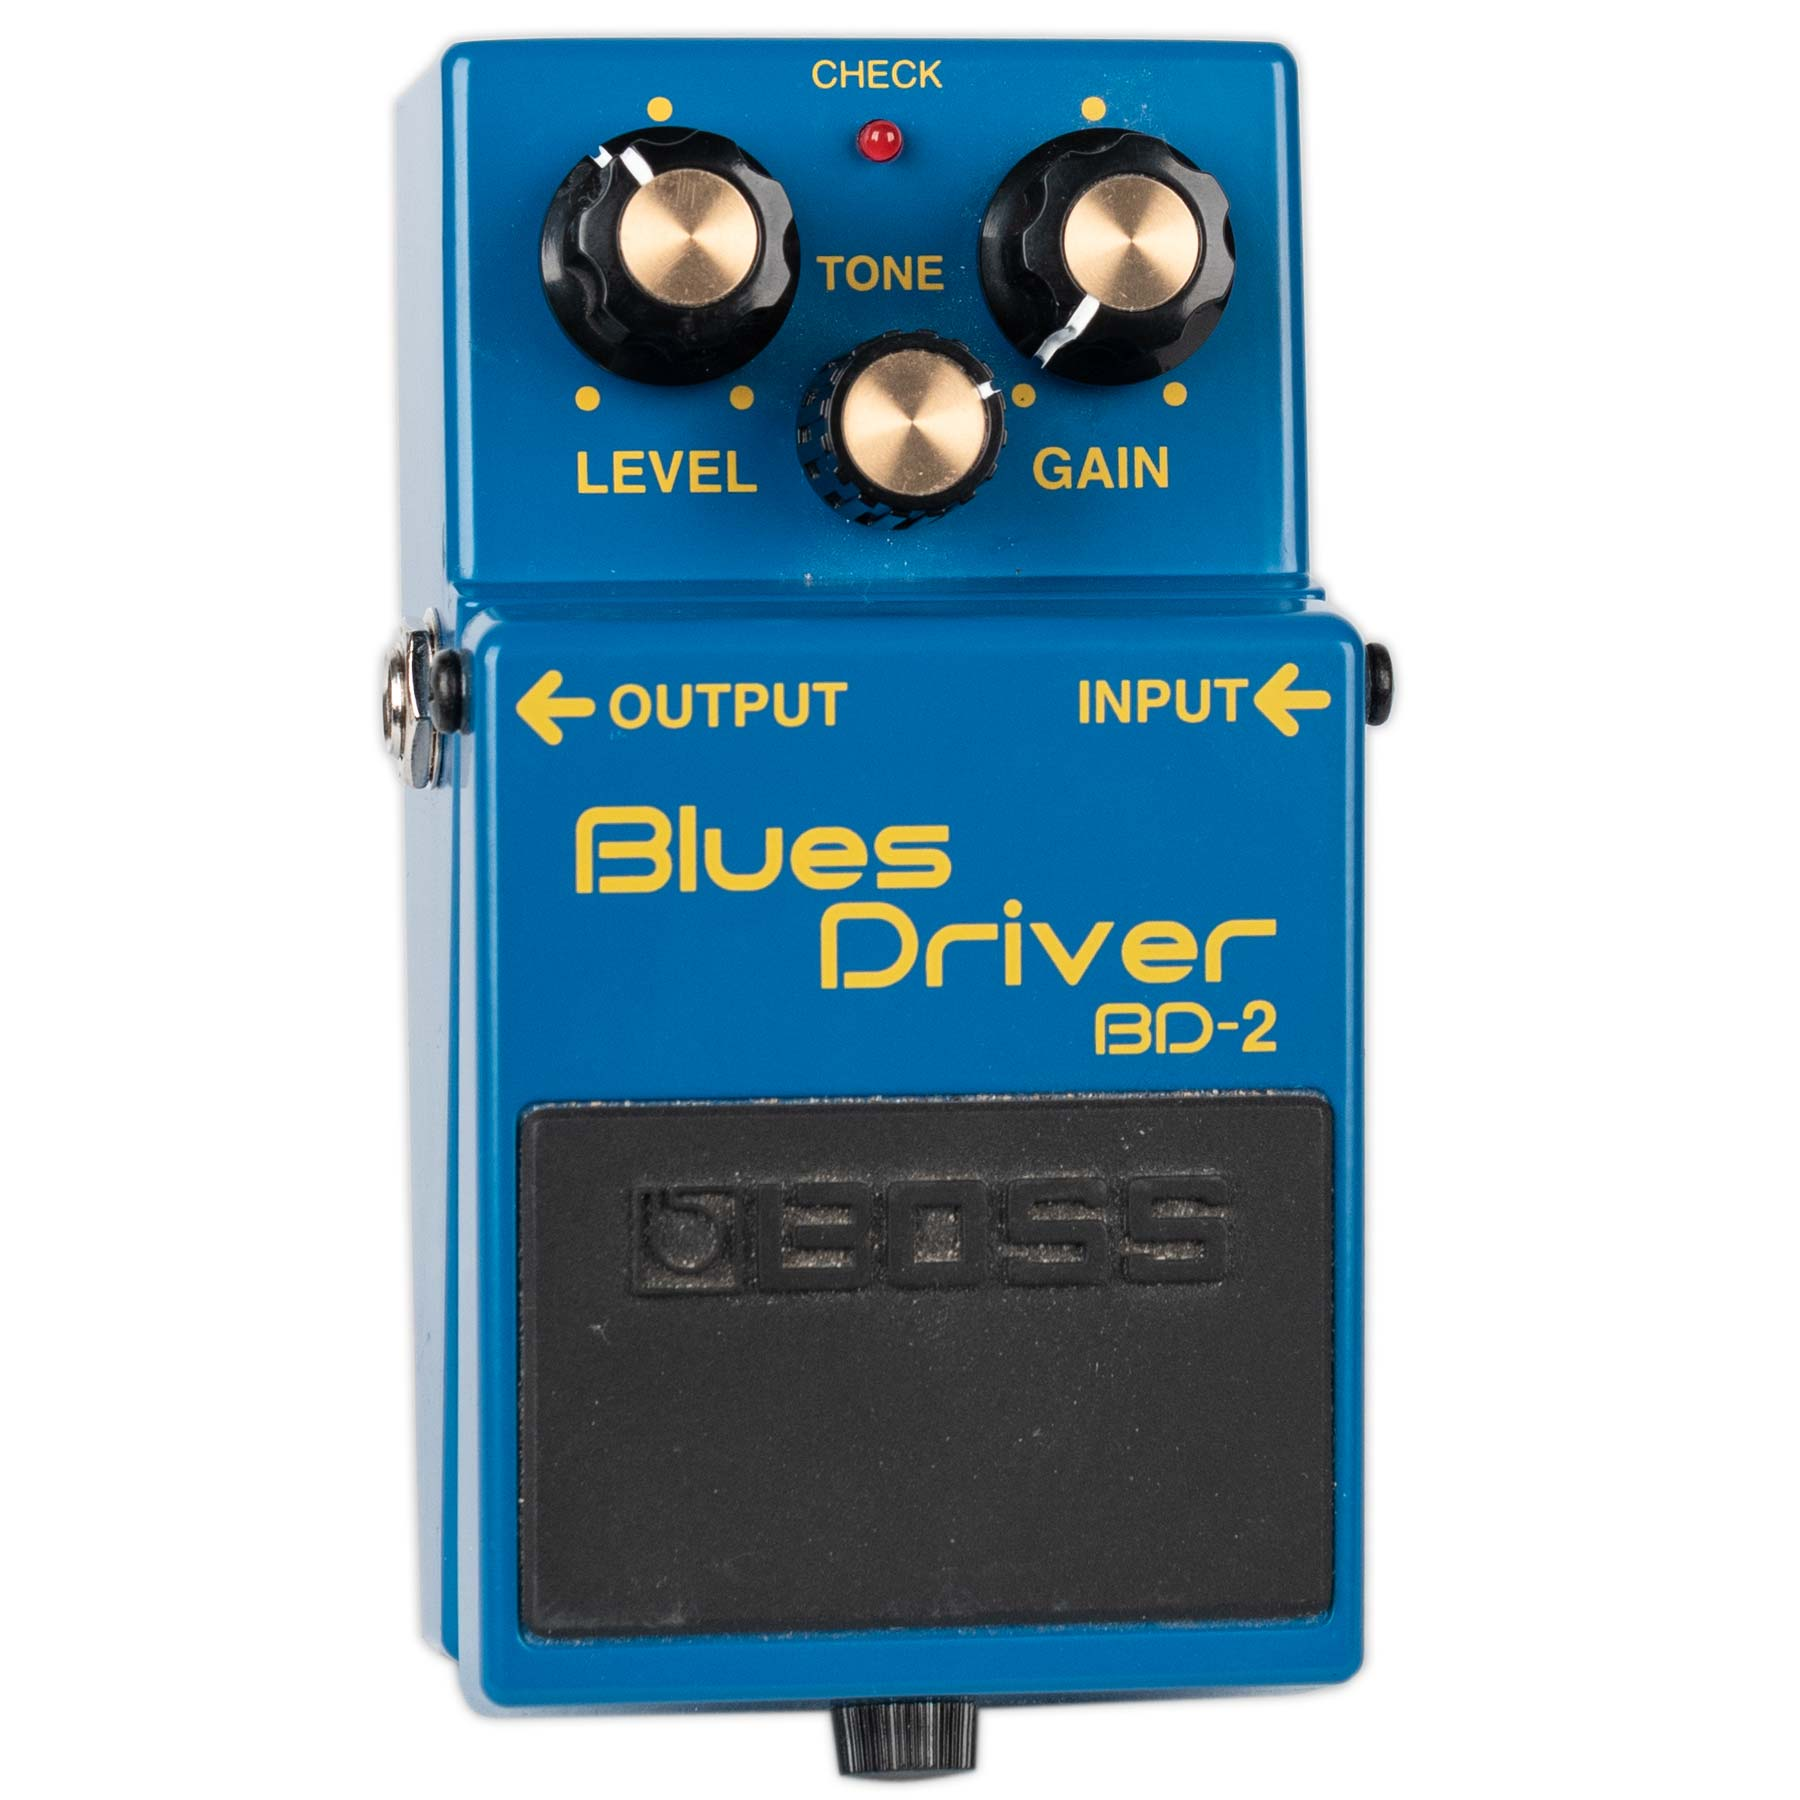 USED BOSS BD-2 BLUES DRIVER WITH BOX